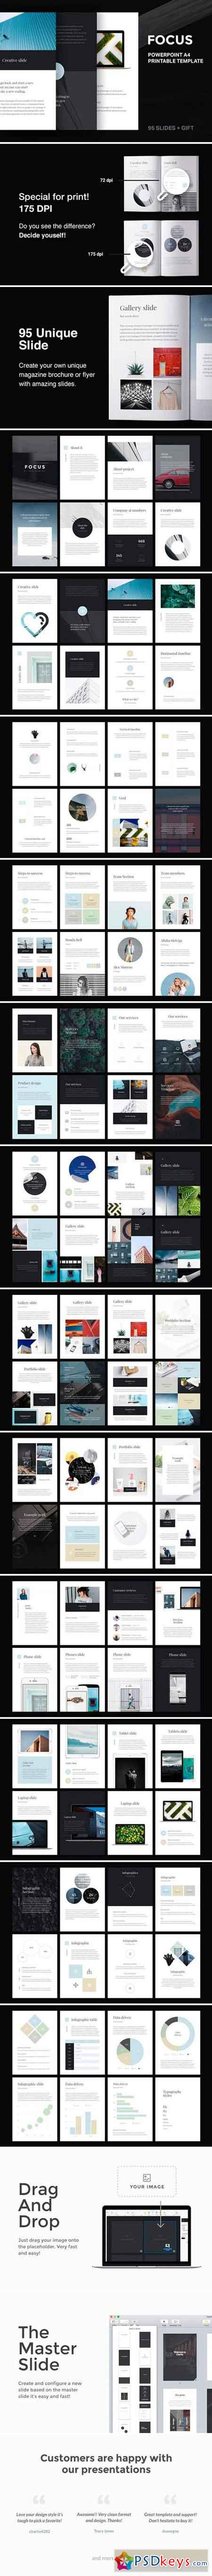 A4 Focus PowerPoint Template 2539420